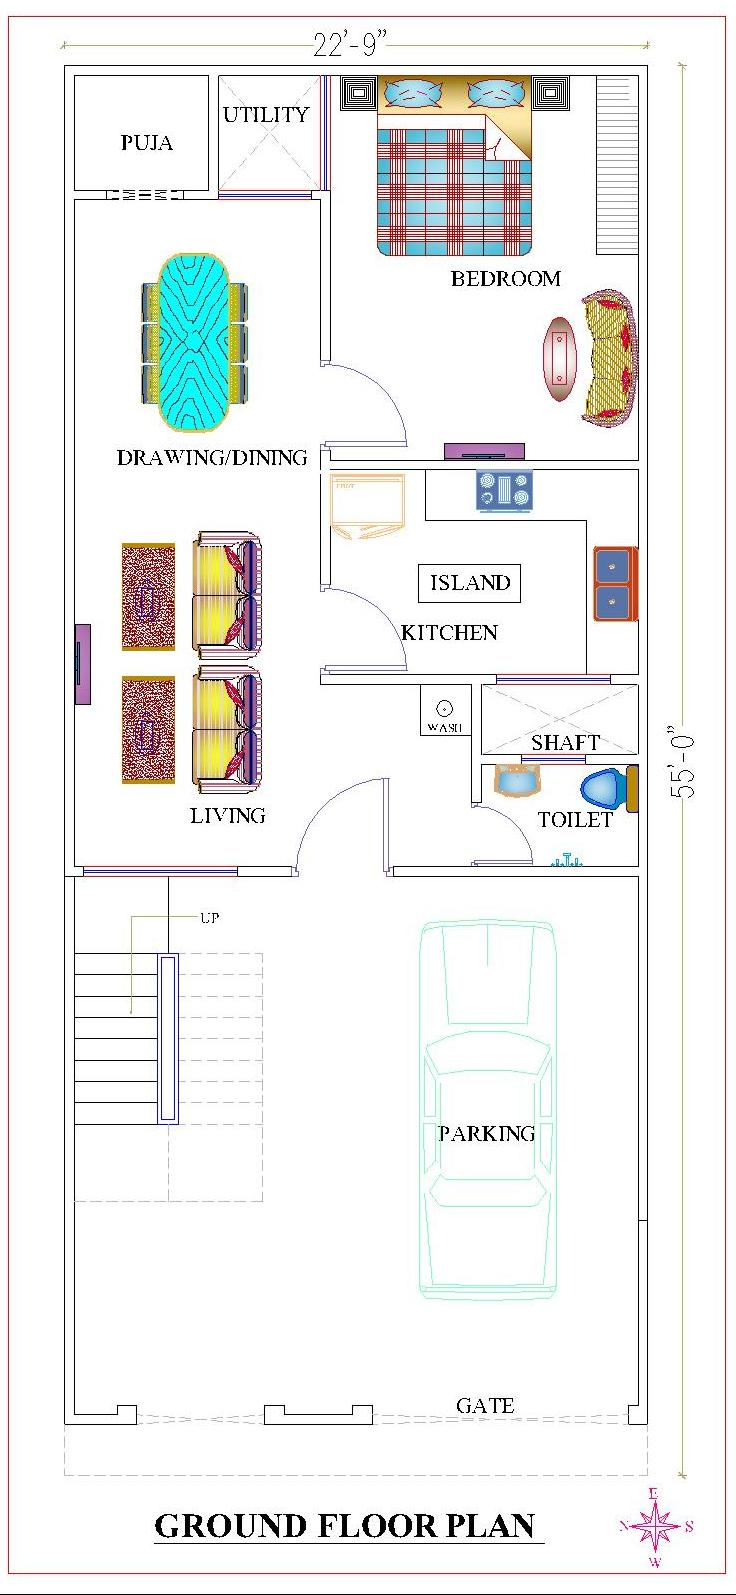 gallrey5f5350c2b3df4GROUND FLOOR PLAN.jpg